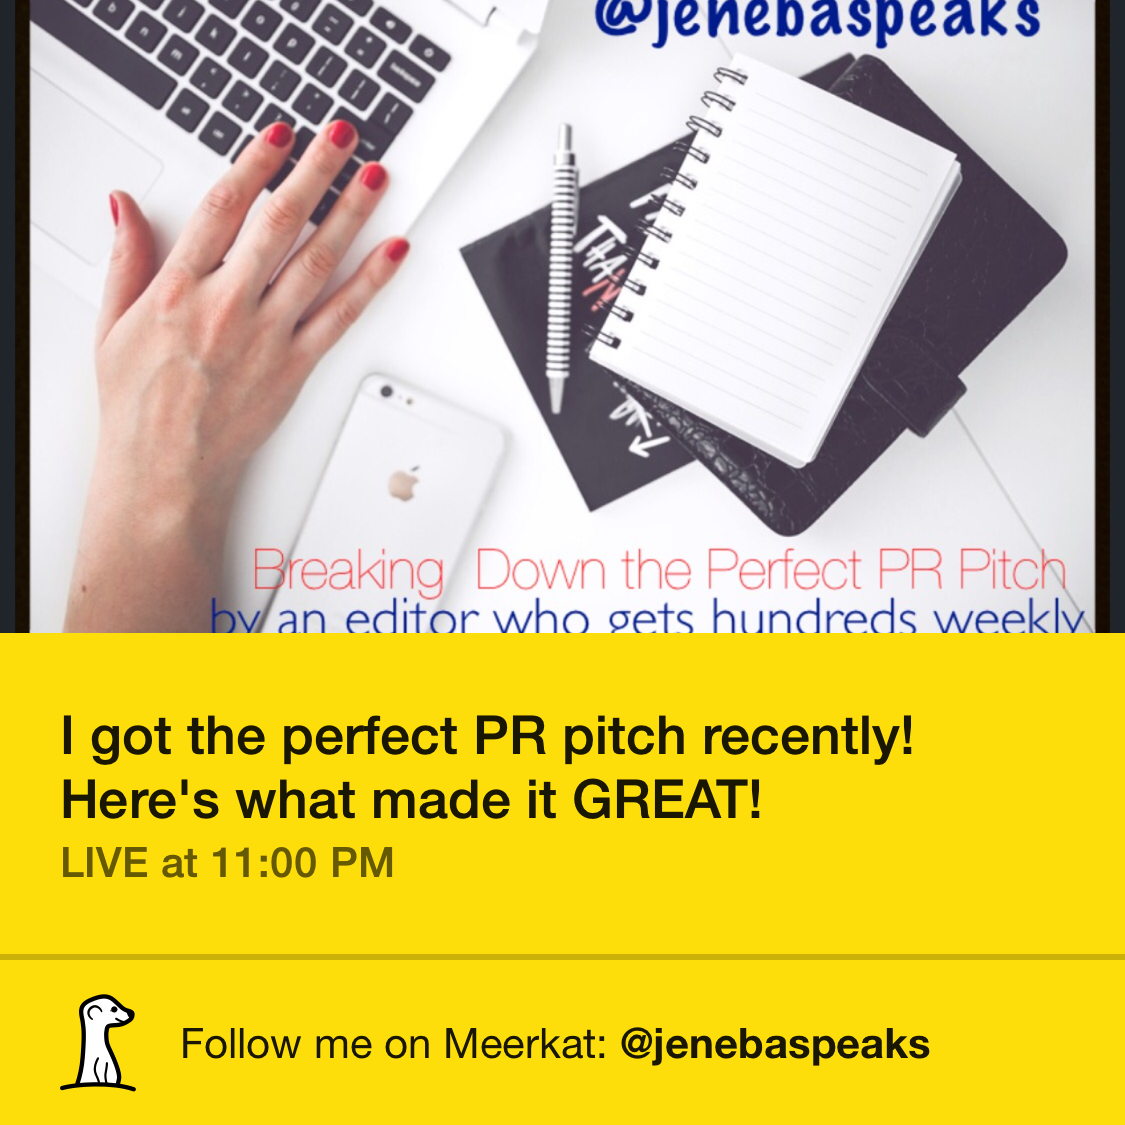 This is what made the BEST PR Pitch I've ever seen GREAT! (Video Link)